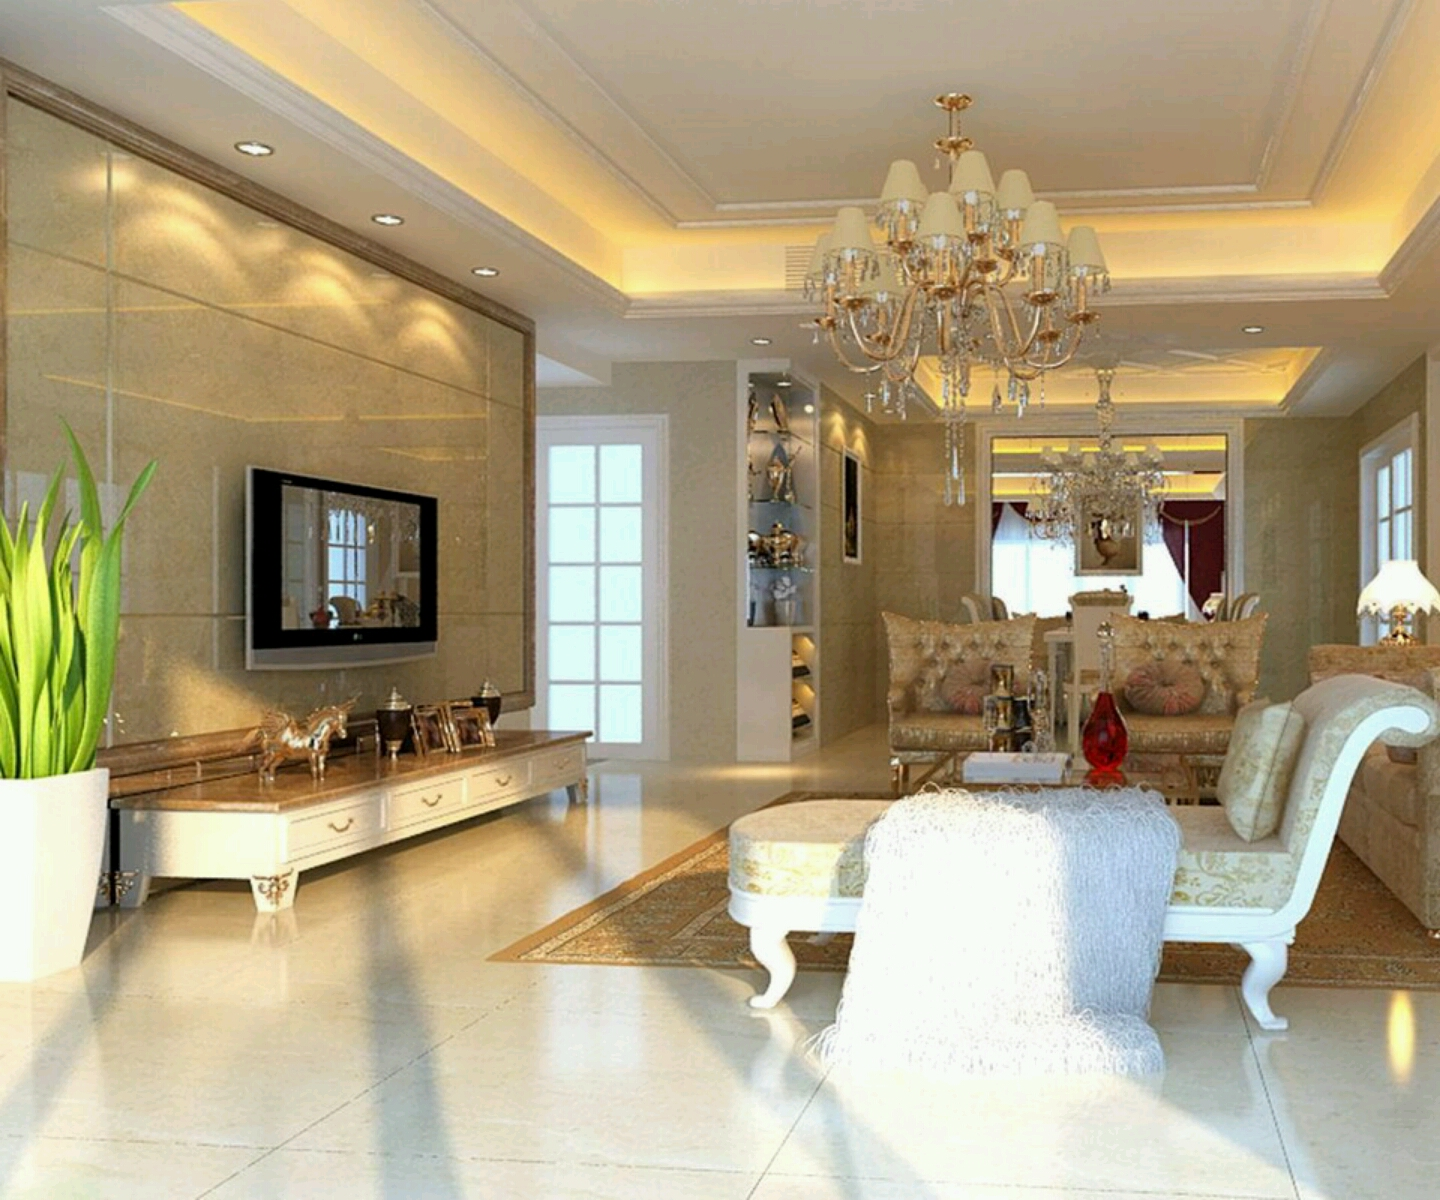 Luxury home interior epic home designs - Interior living room design ideas ...